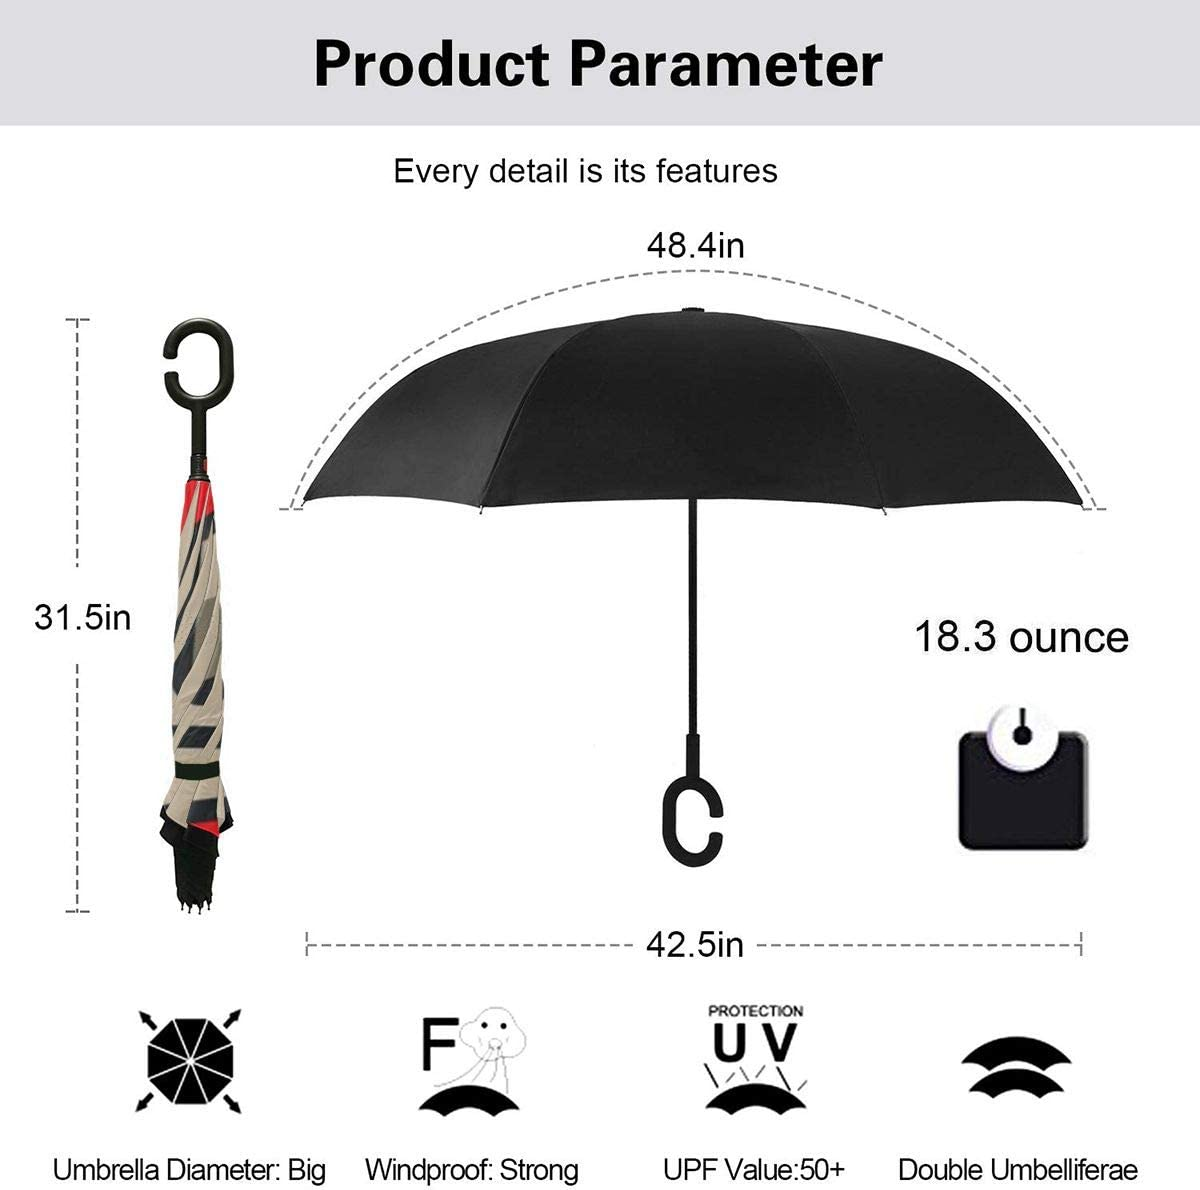 Hgnhgbn Charlotte Checkers Windproof And UV Resistant Fabric Car Reverse Umbrella